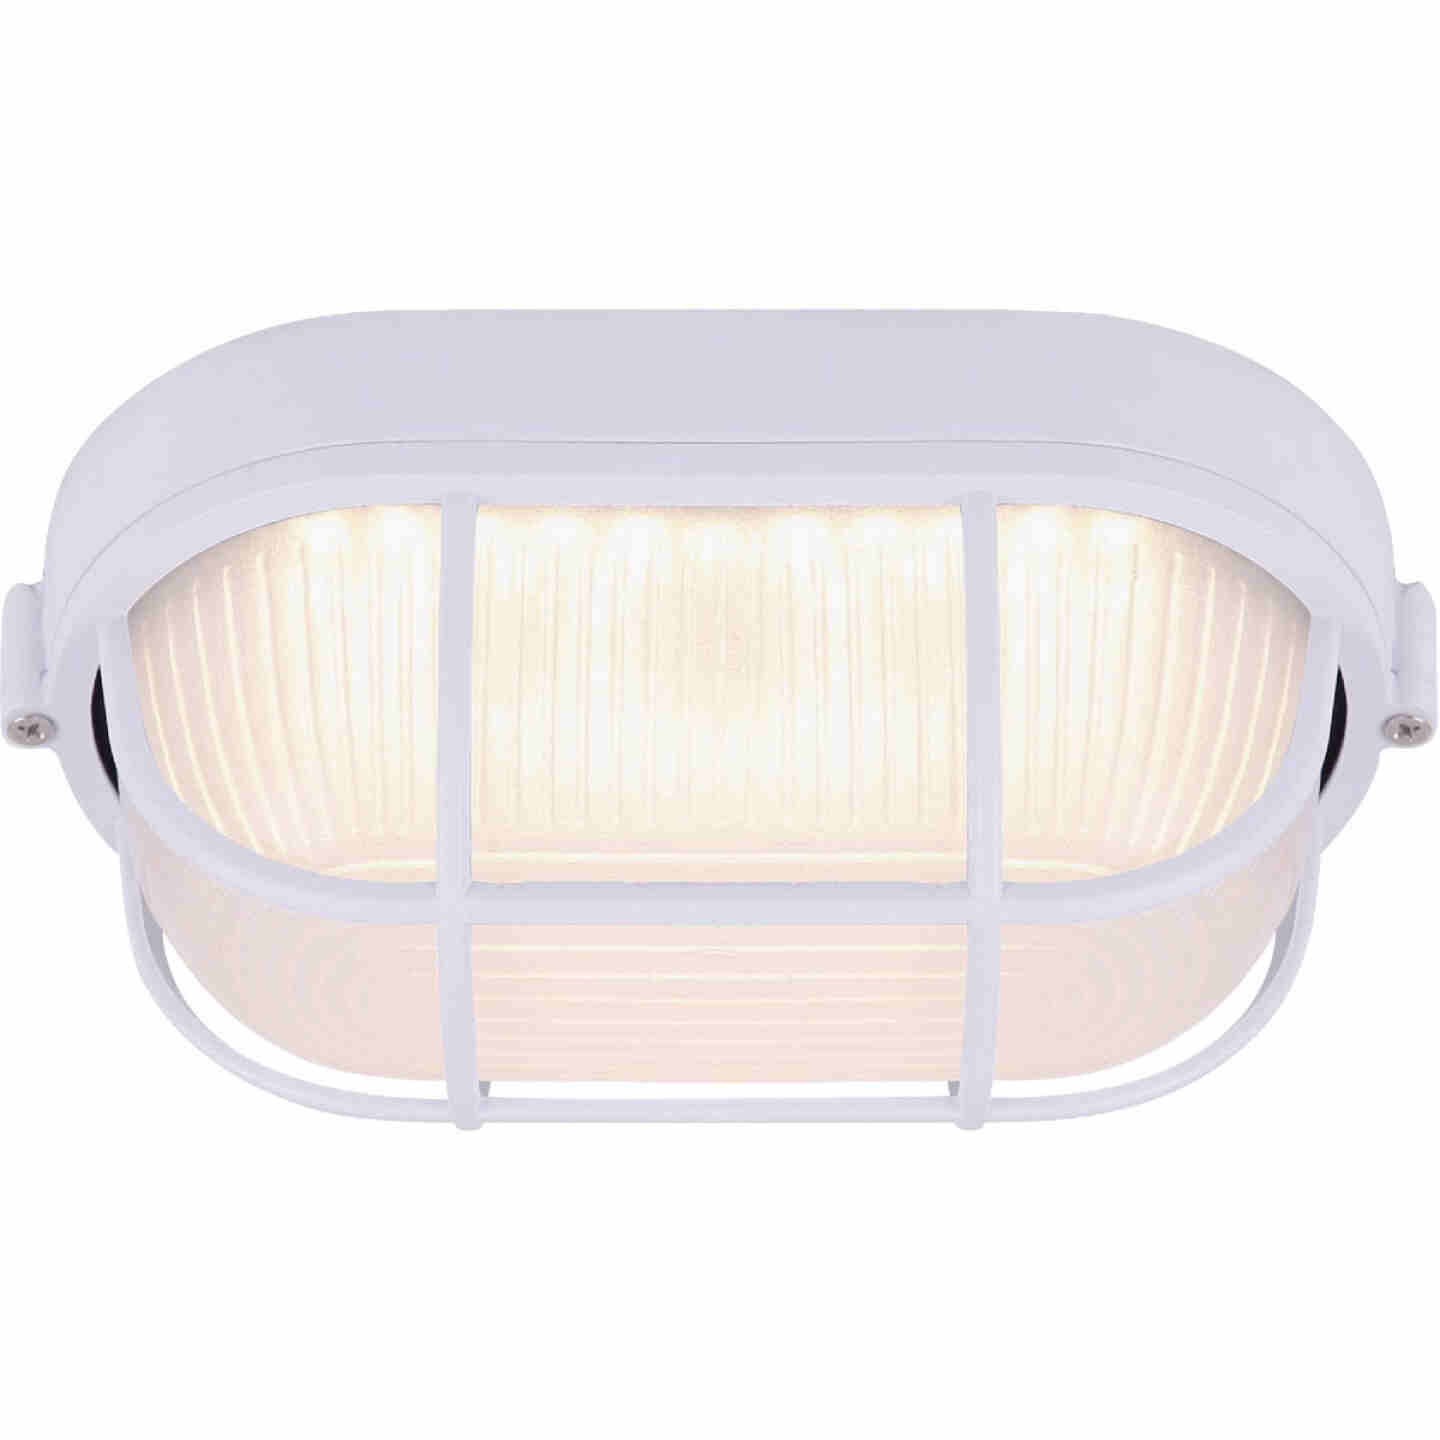 Home Impressions White LED Outdoor Light Image 1